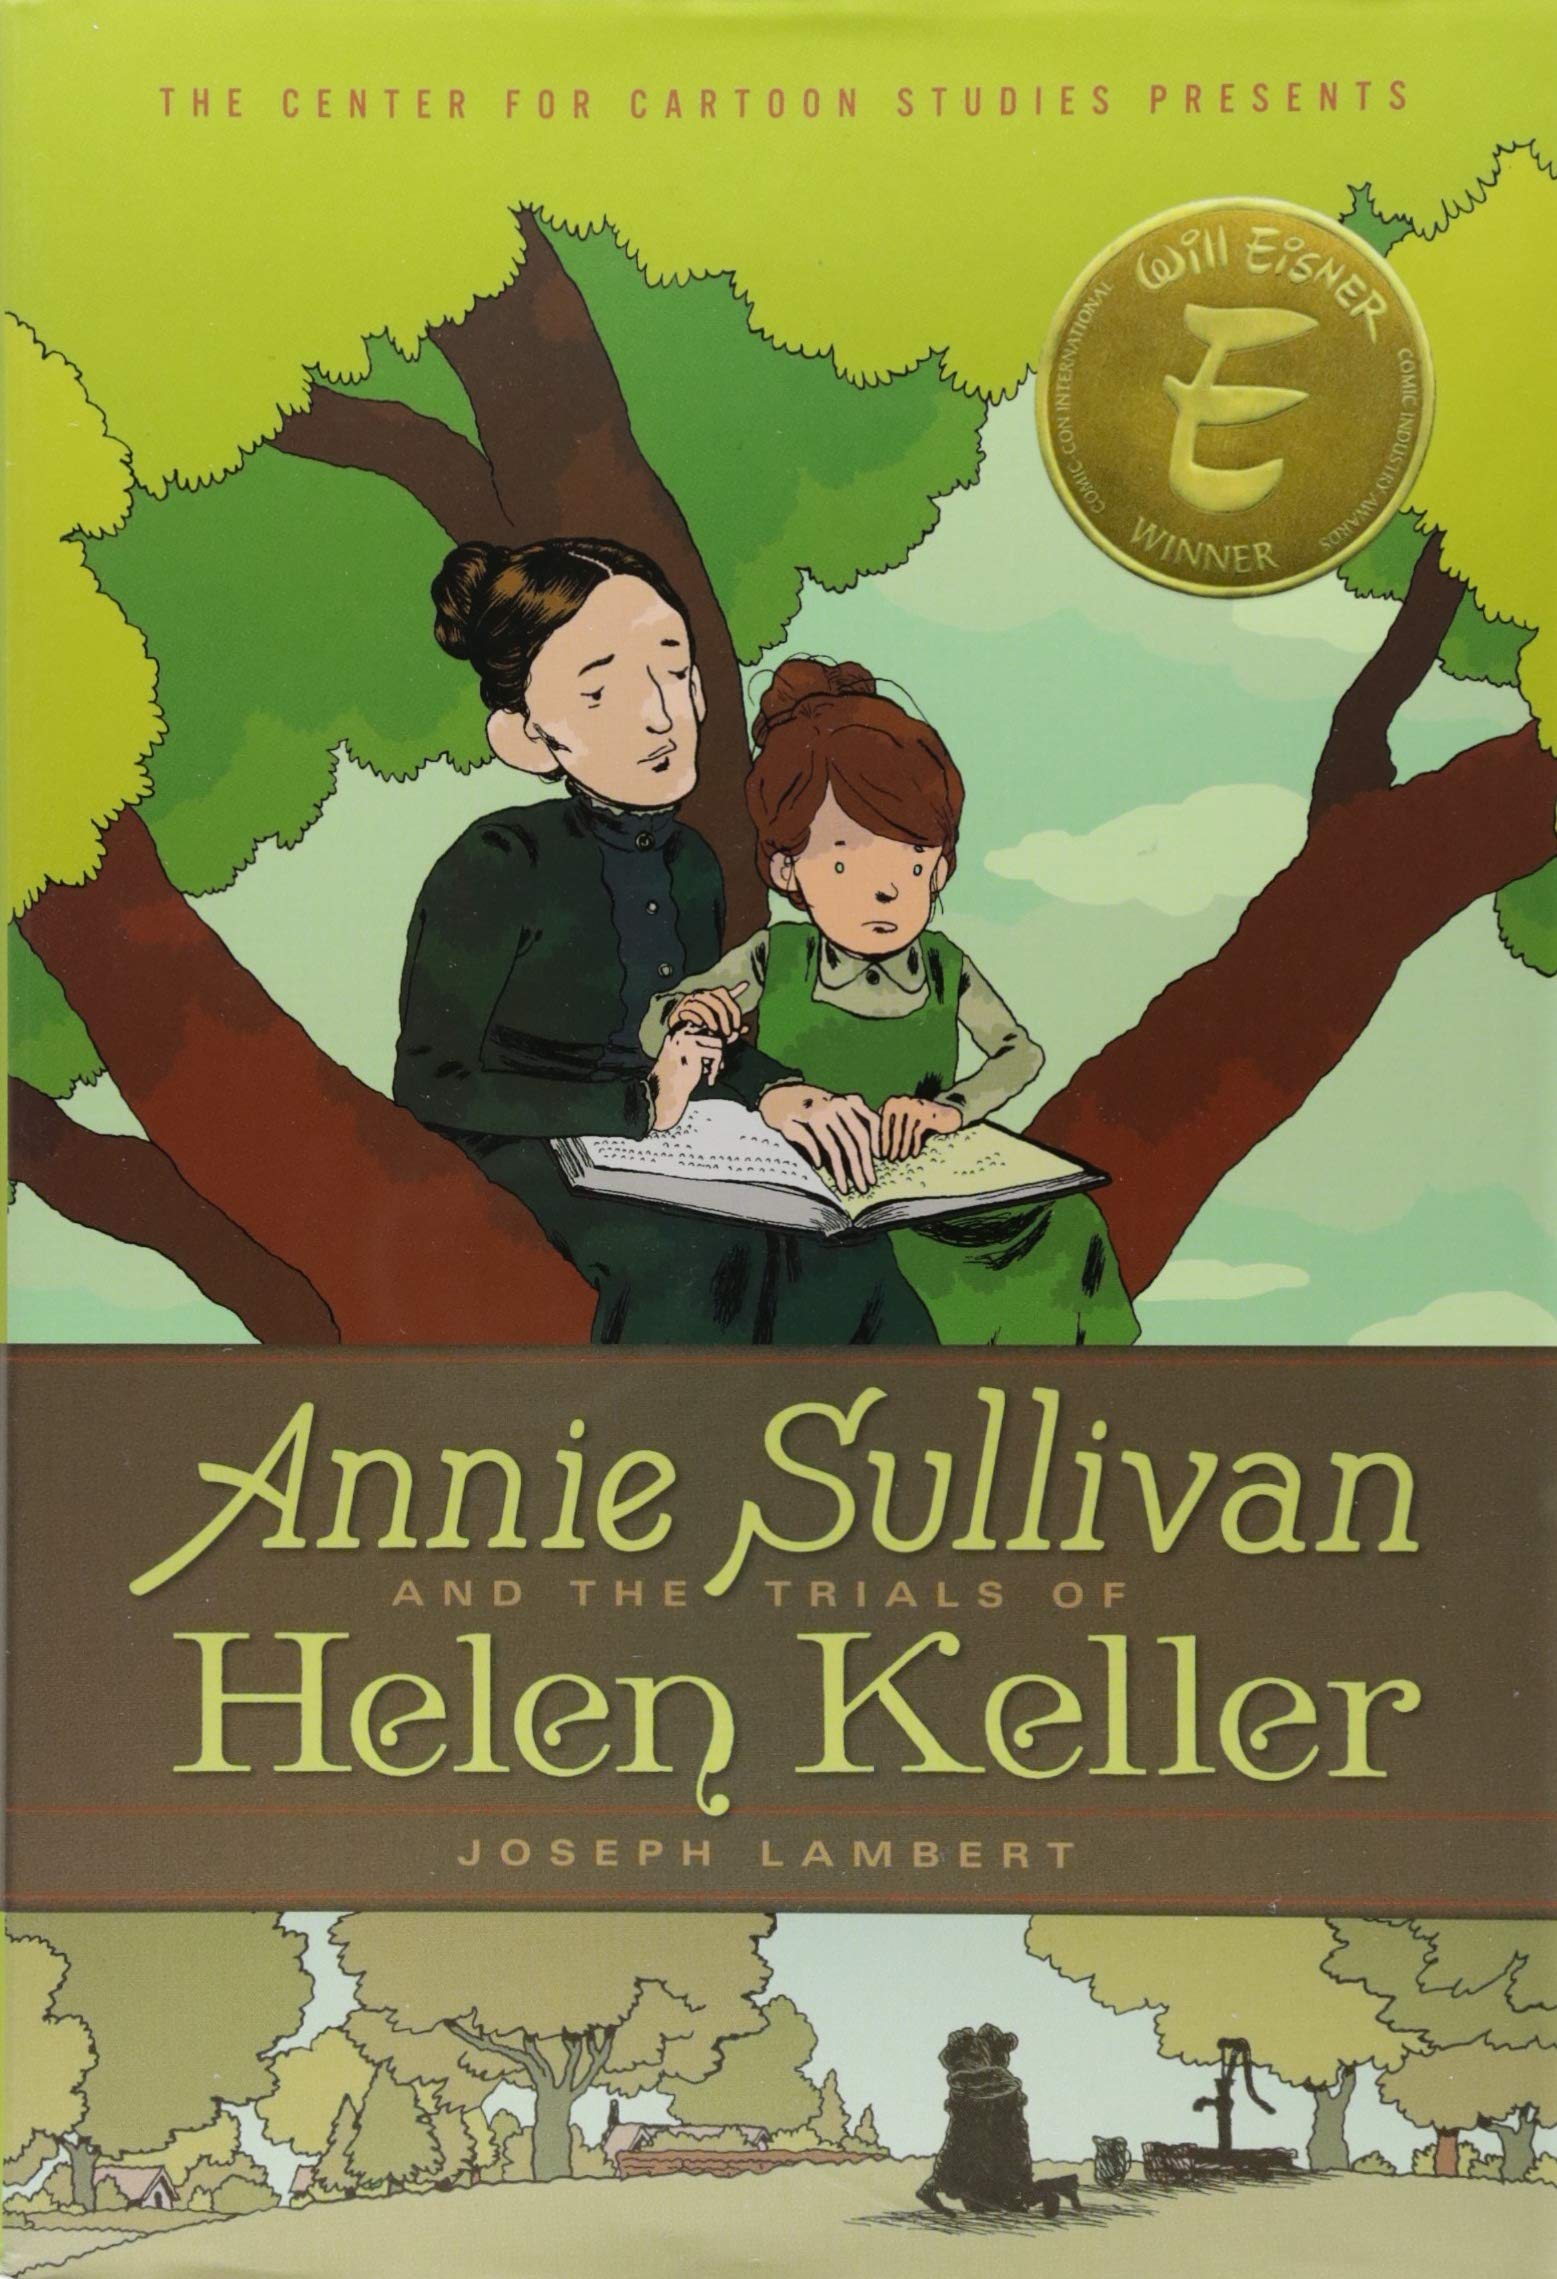 Annie Sullivan and the Trials of Helen Keller (A Center for Cartoon Studies Graphic Novel)